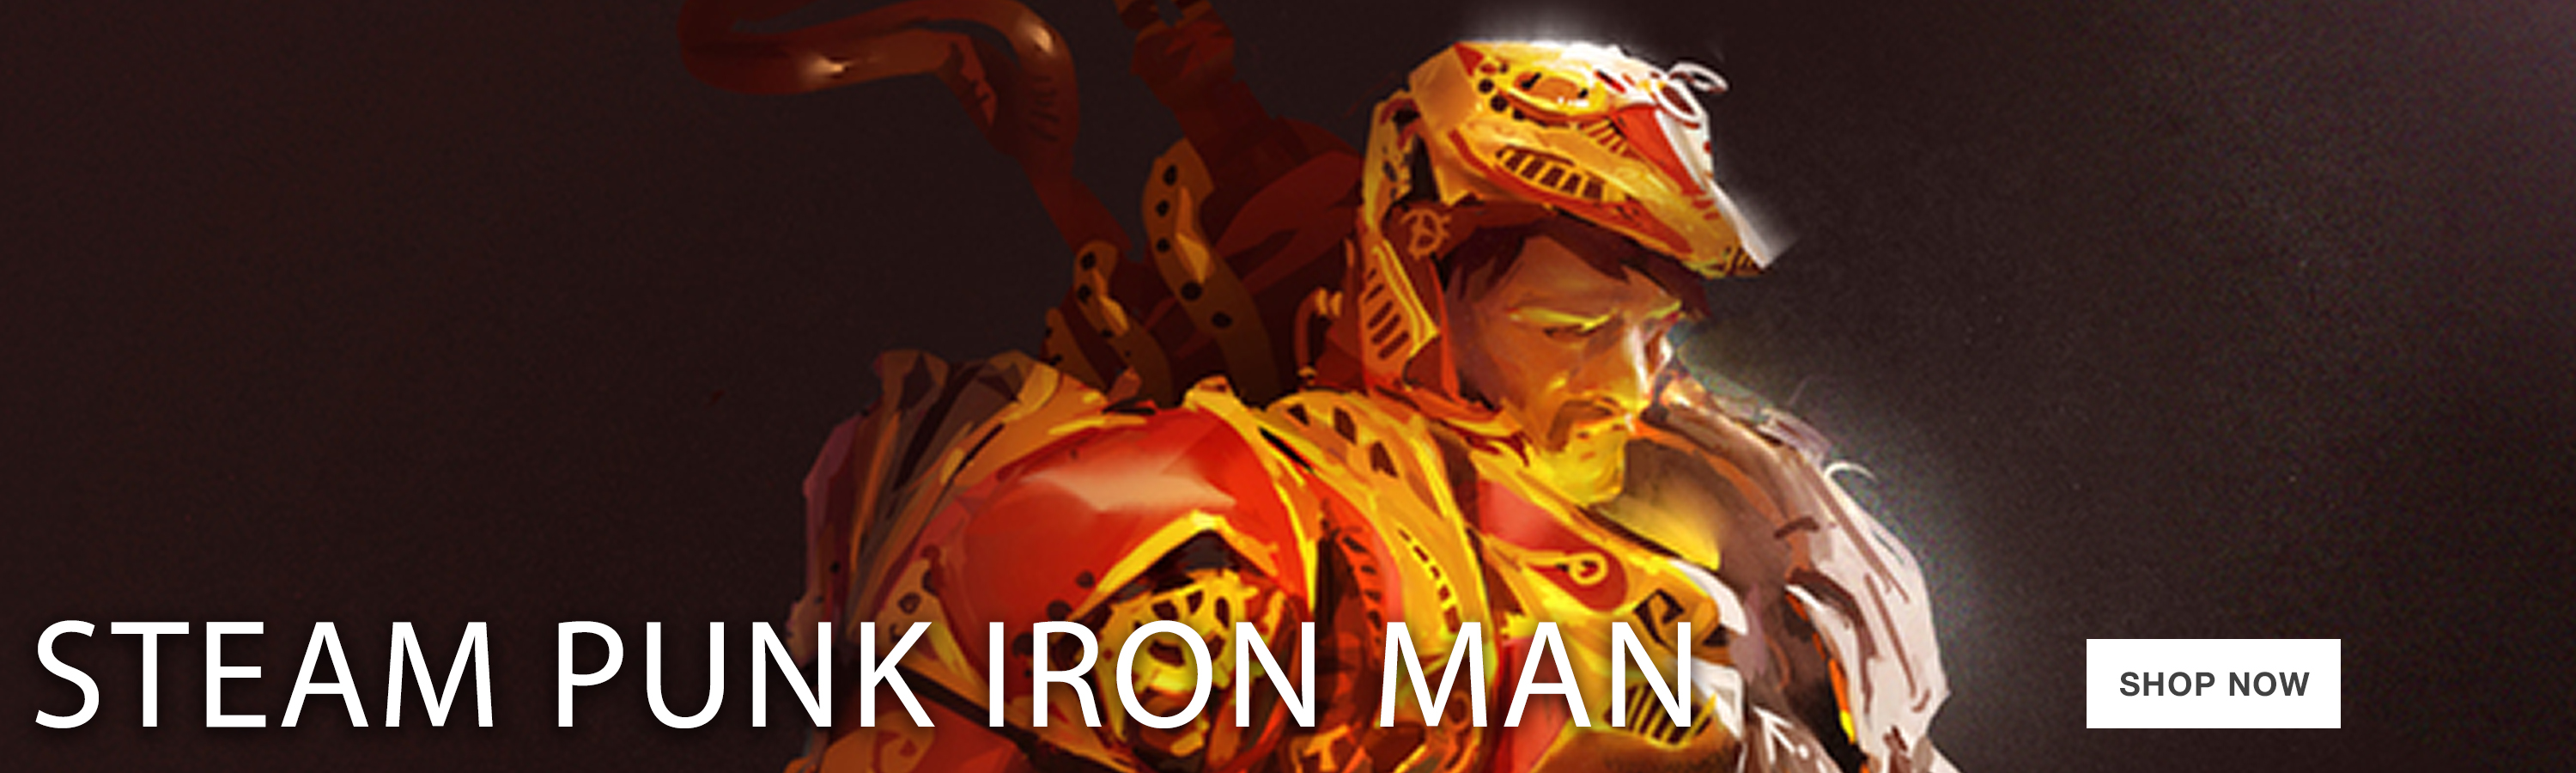 Steampunk Iron Man – horizontal-jumbo-ad